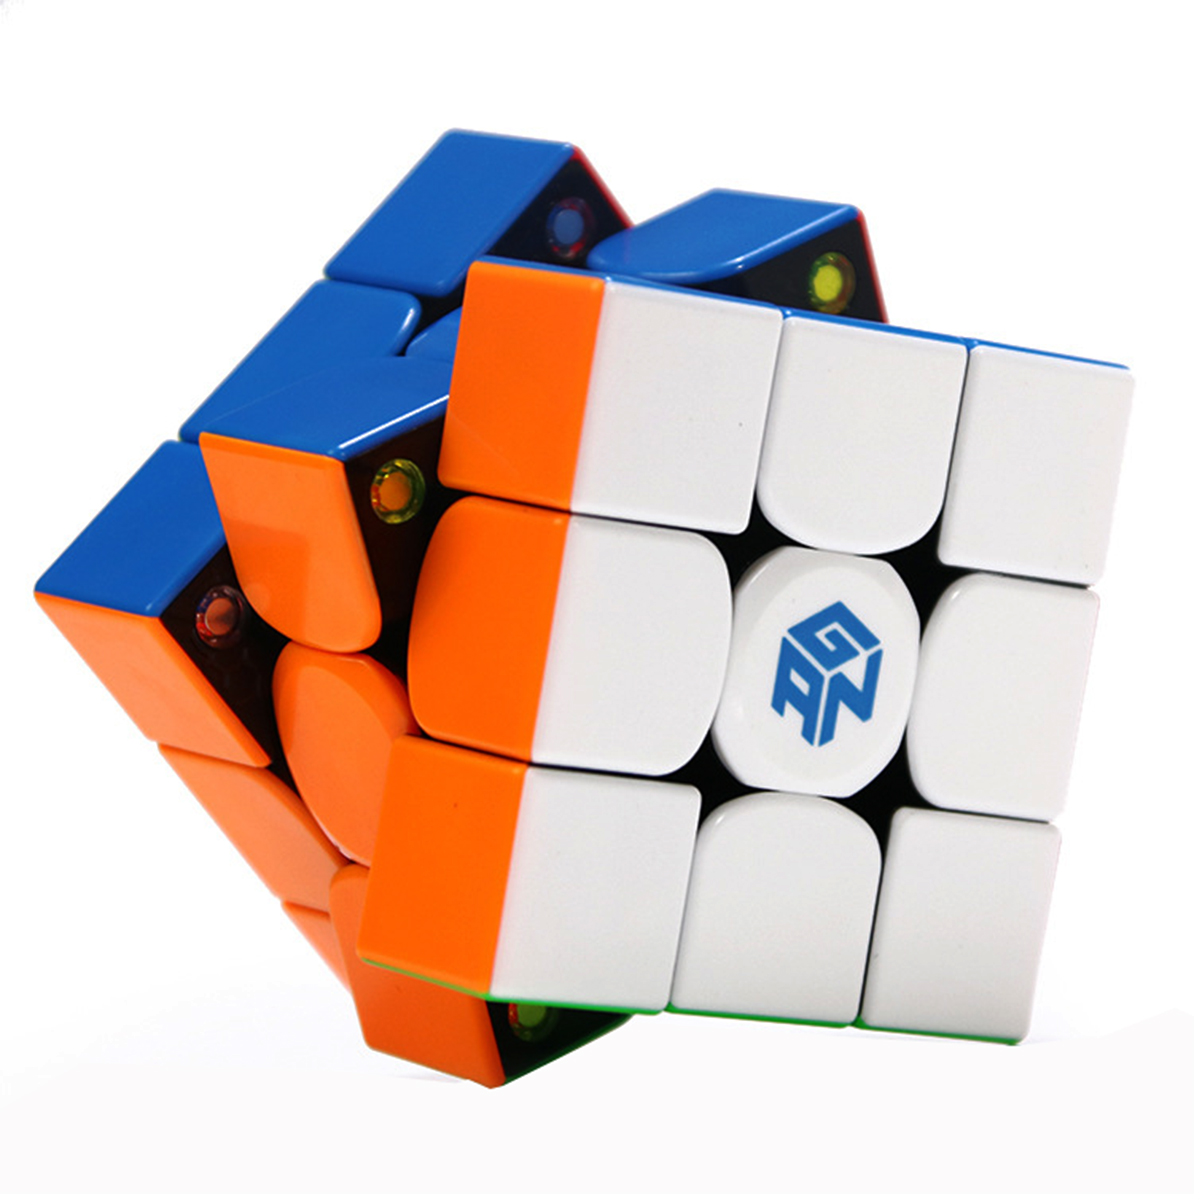 Gan GAN354M 3x3x3 Stickerless Magnetic Gan 354 M Magic Cube Speed Puzzle Game Cubes Educational Toys For Children Christmas GiftGan GAN354M 3x3x3 Stickerless Magnetic Gan 354 M Magic Cube Speed Puzzle Game Cubes Educational Toys For Children Christmas Gift